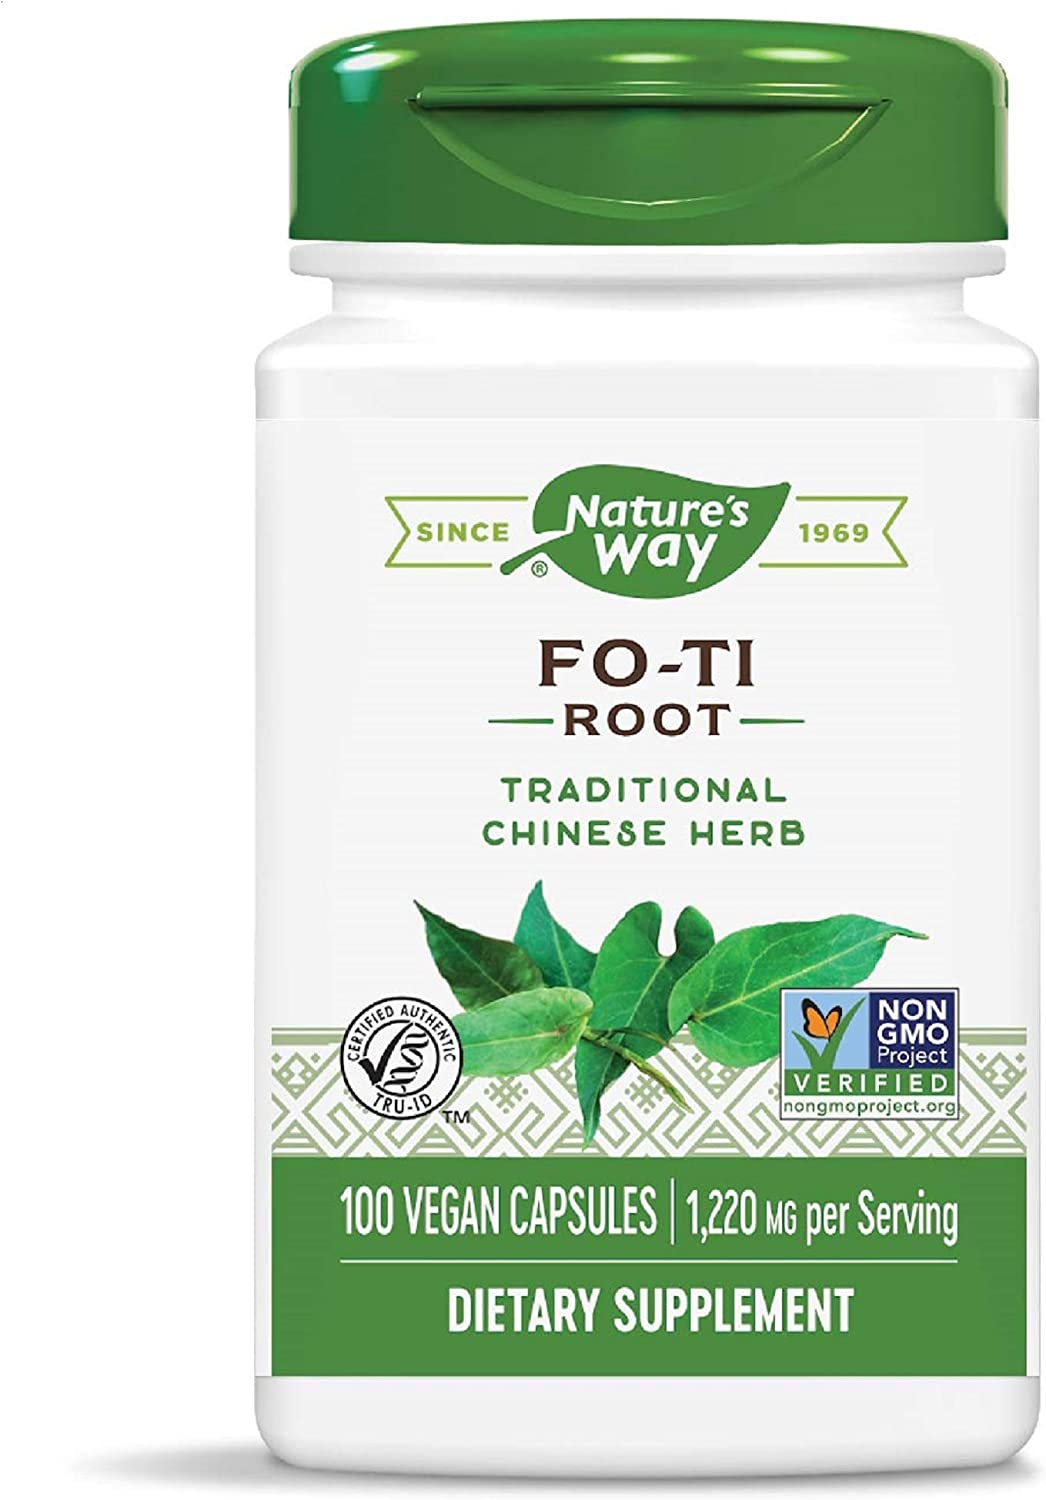 Nature's Way Fo-Ti Root, 1,220 mg per serving, 100 Capsules